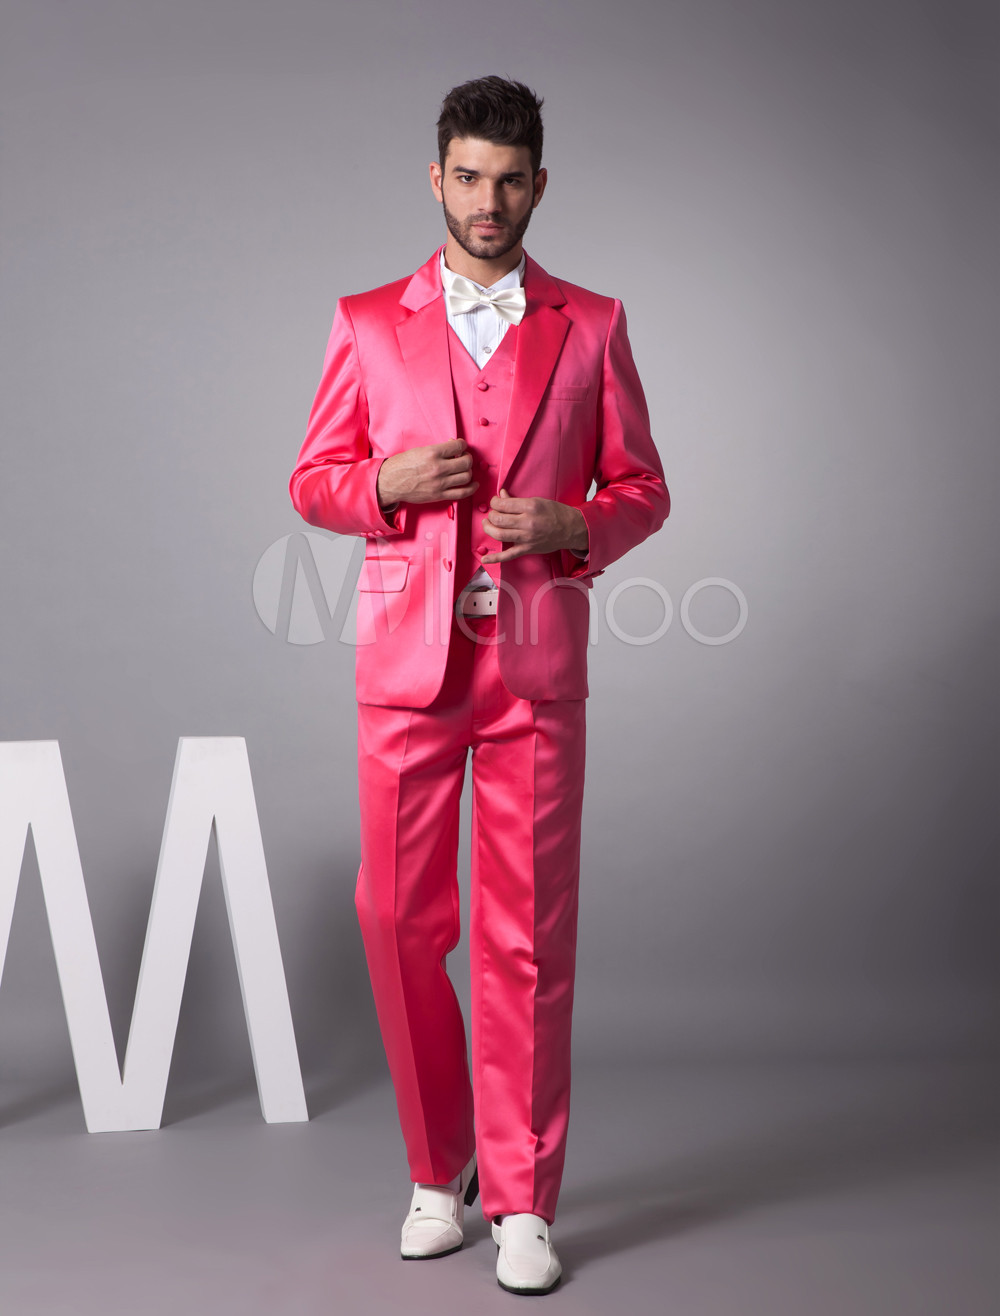 Unique fuchsia single breasted button satin groom wedding tuxedo unique fuchsia single breasted button satin groom wedding tuxedo milanoo junglespirit Images